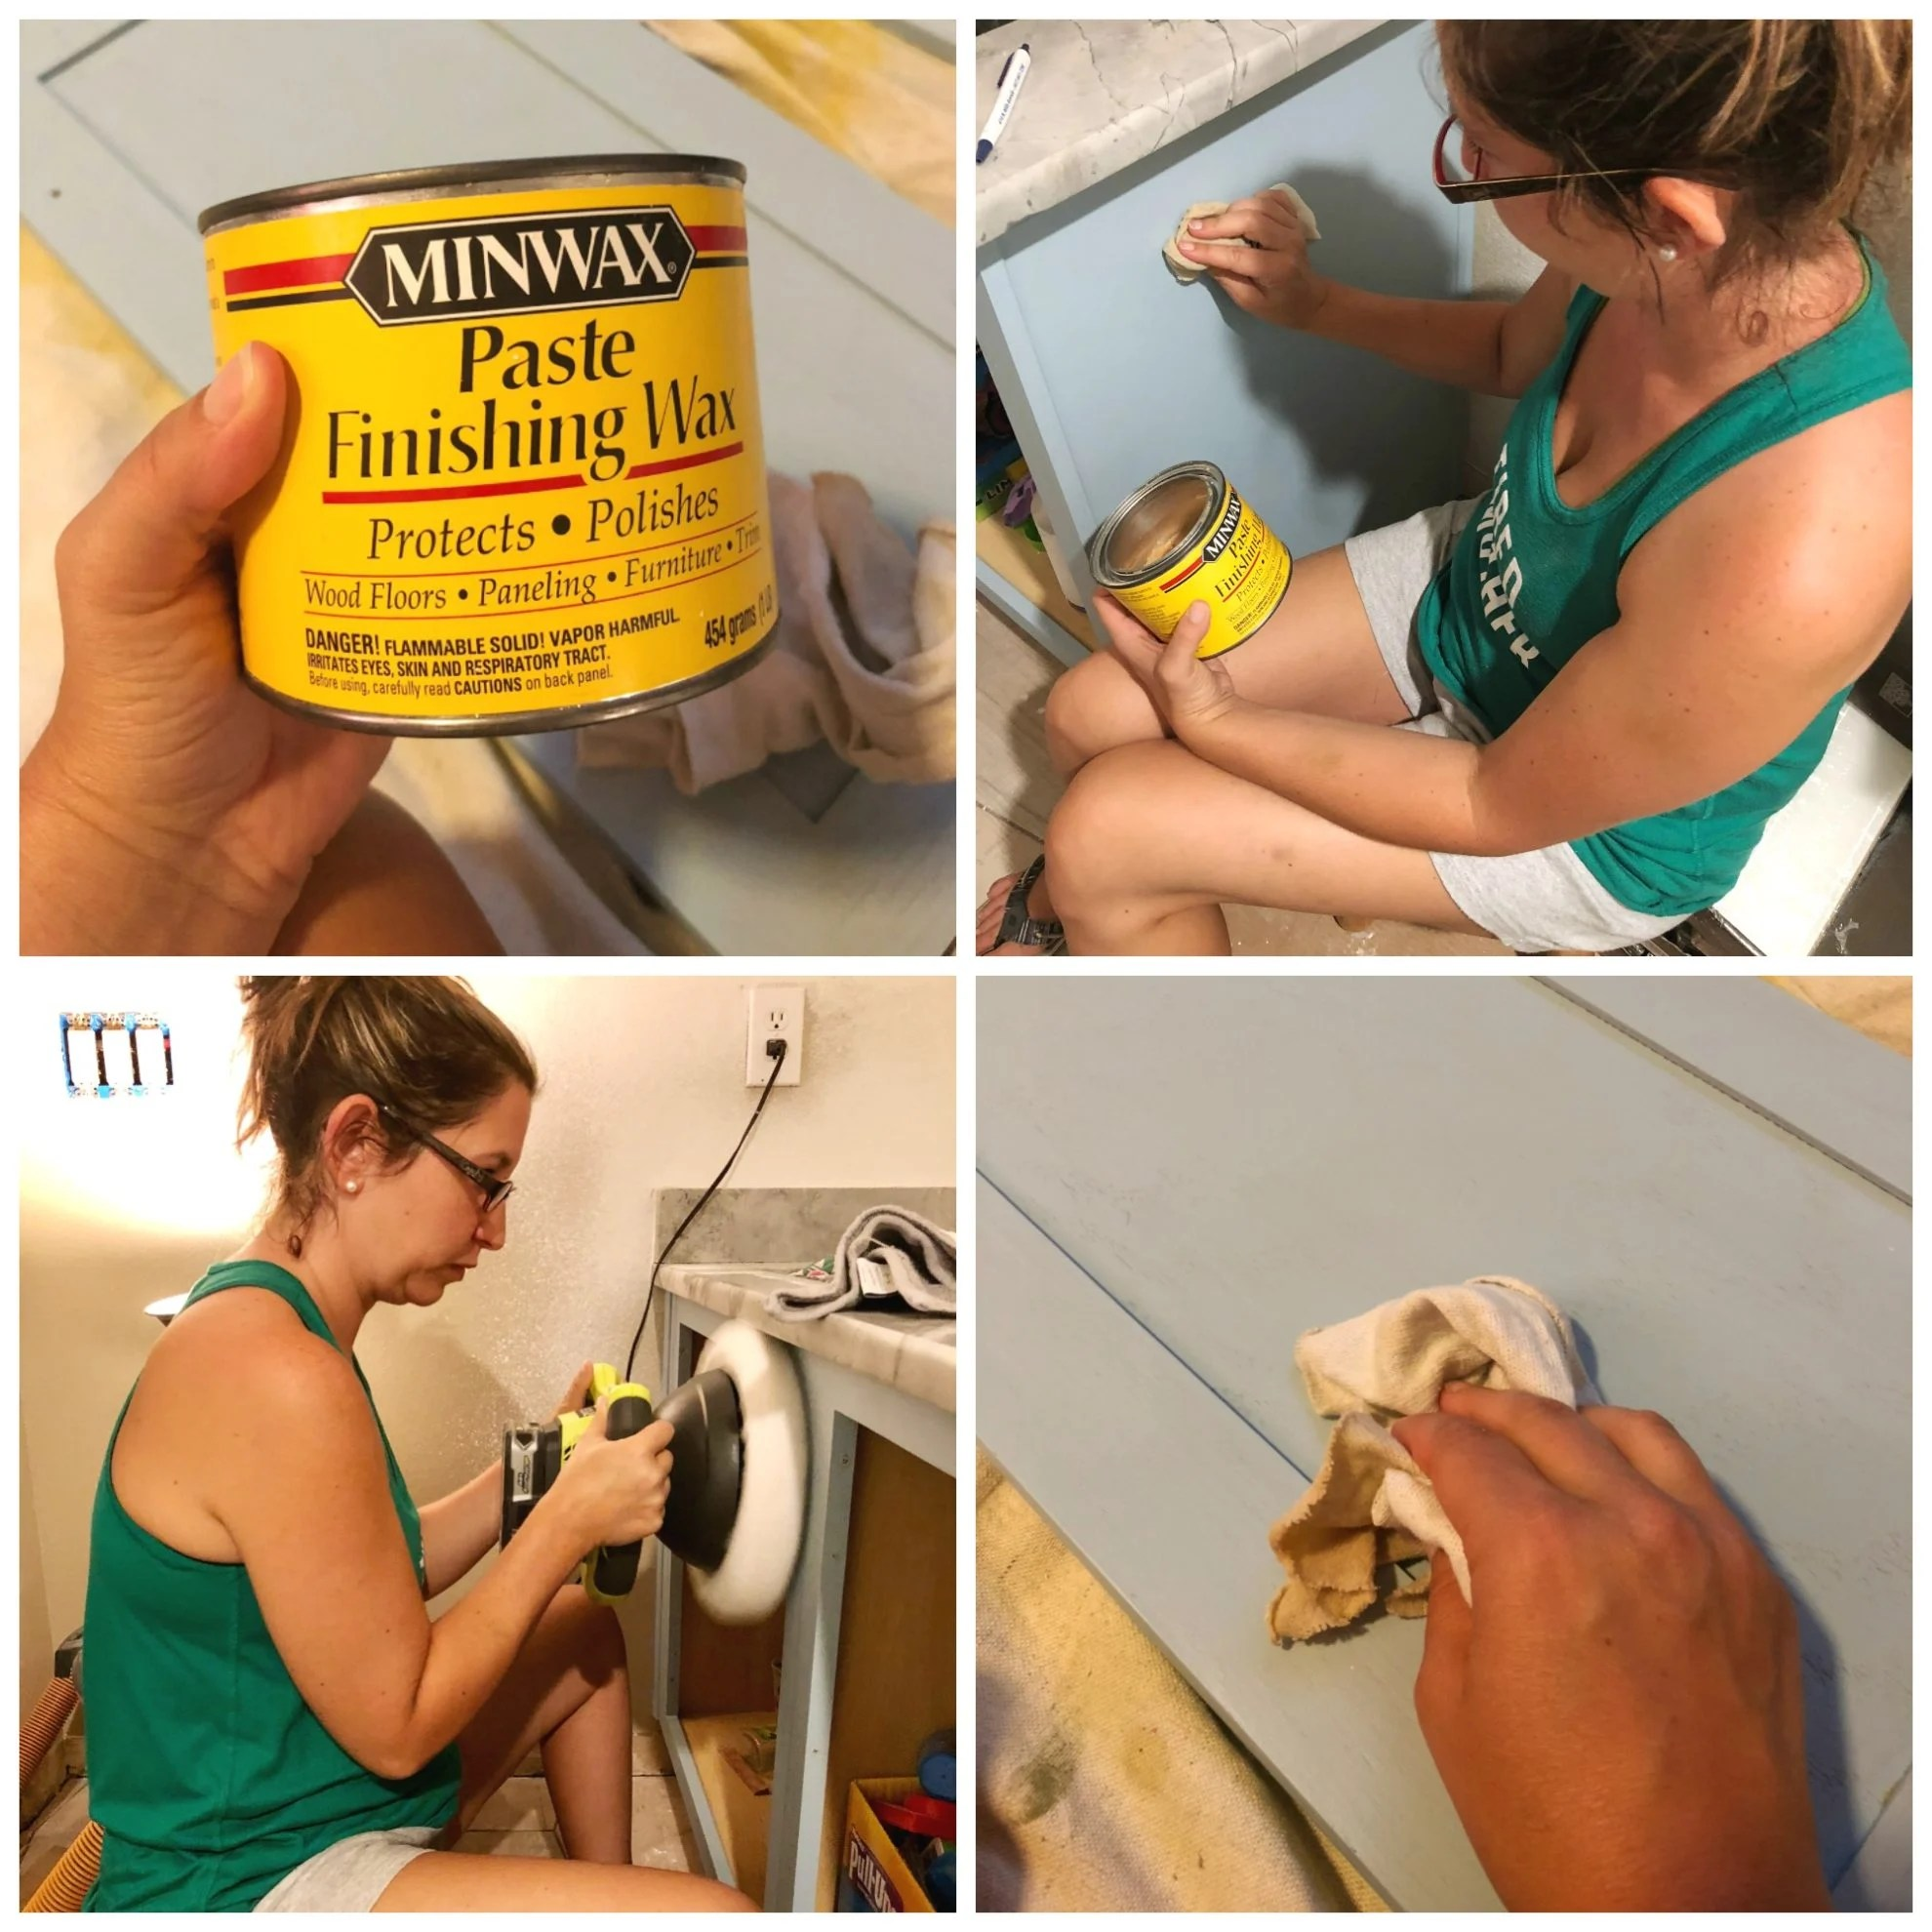 Waxing Cabinets with Paste Finsihing Wax